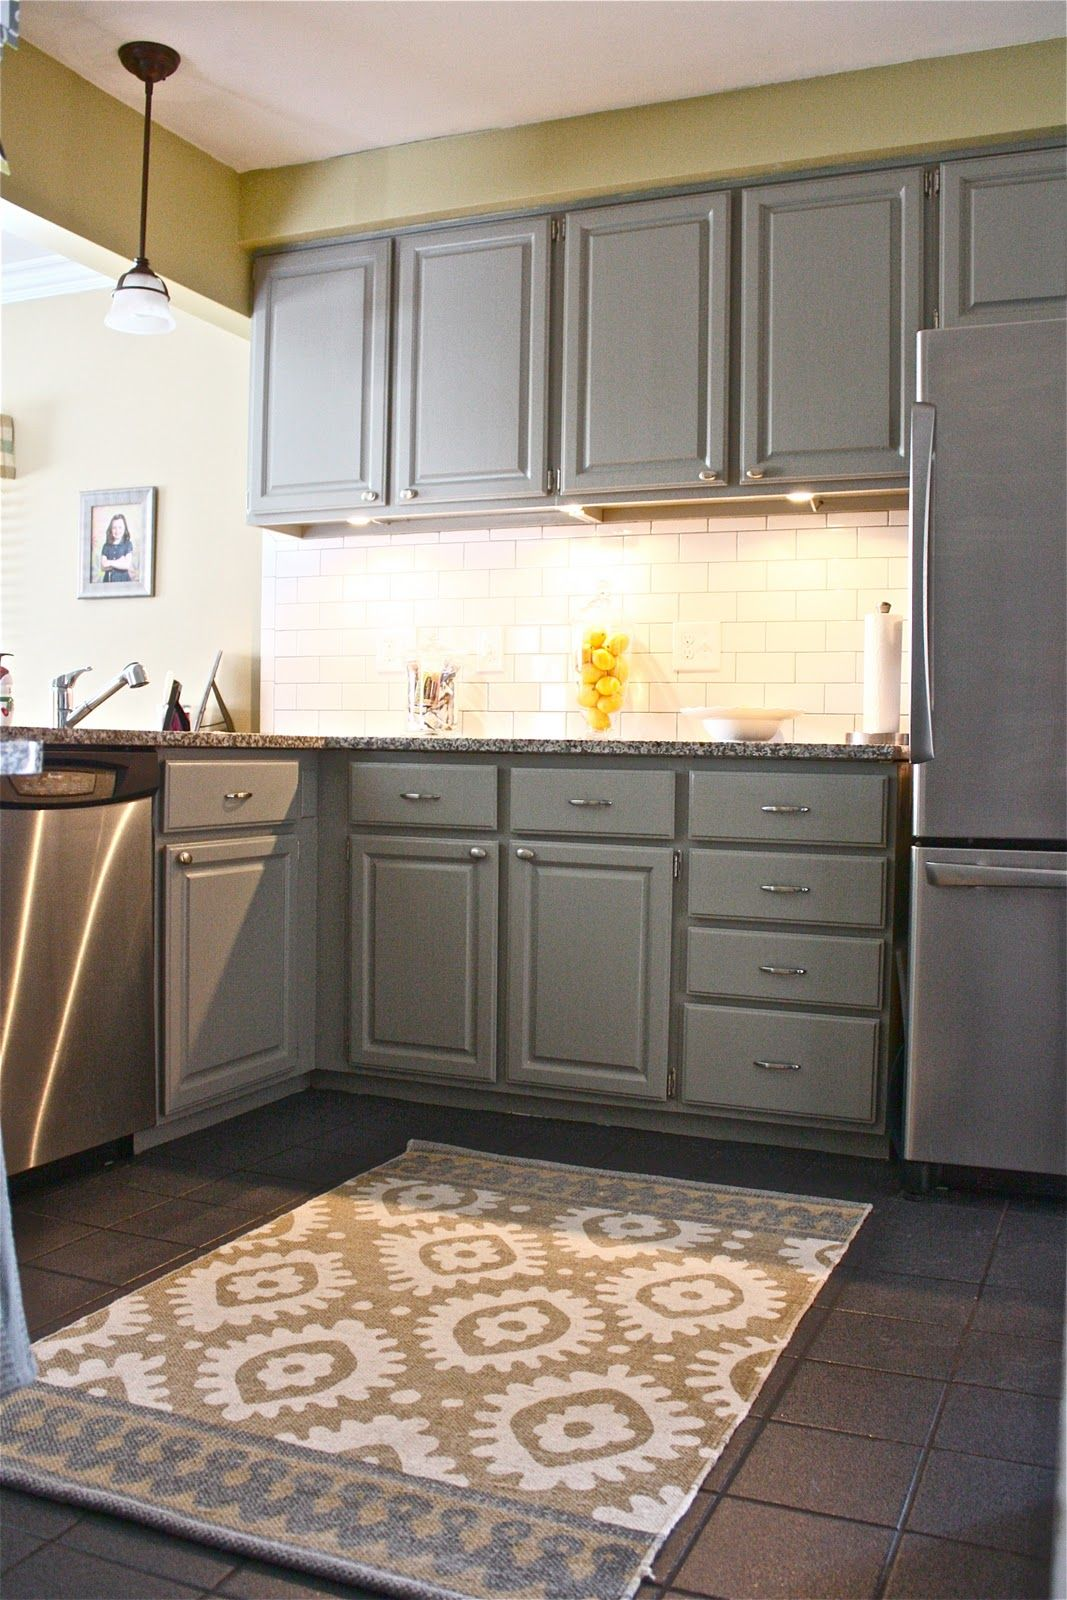 Kitchen Backsplash Yellow Walls mid gray cabinets with light yellow walls and accents. white